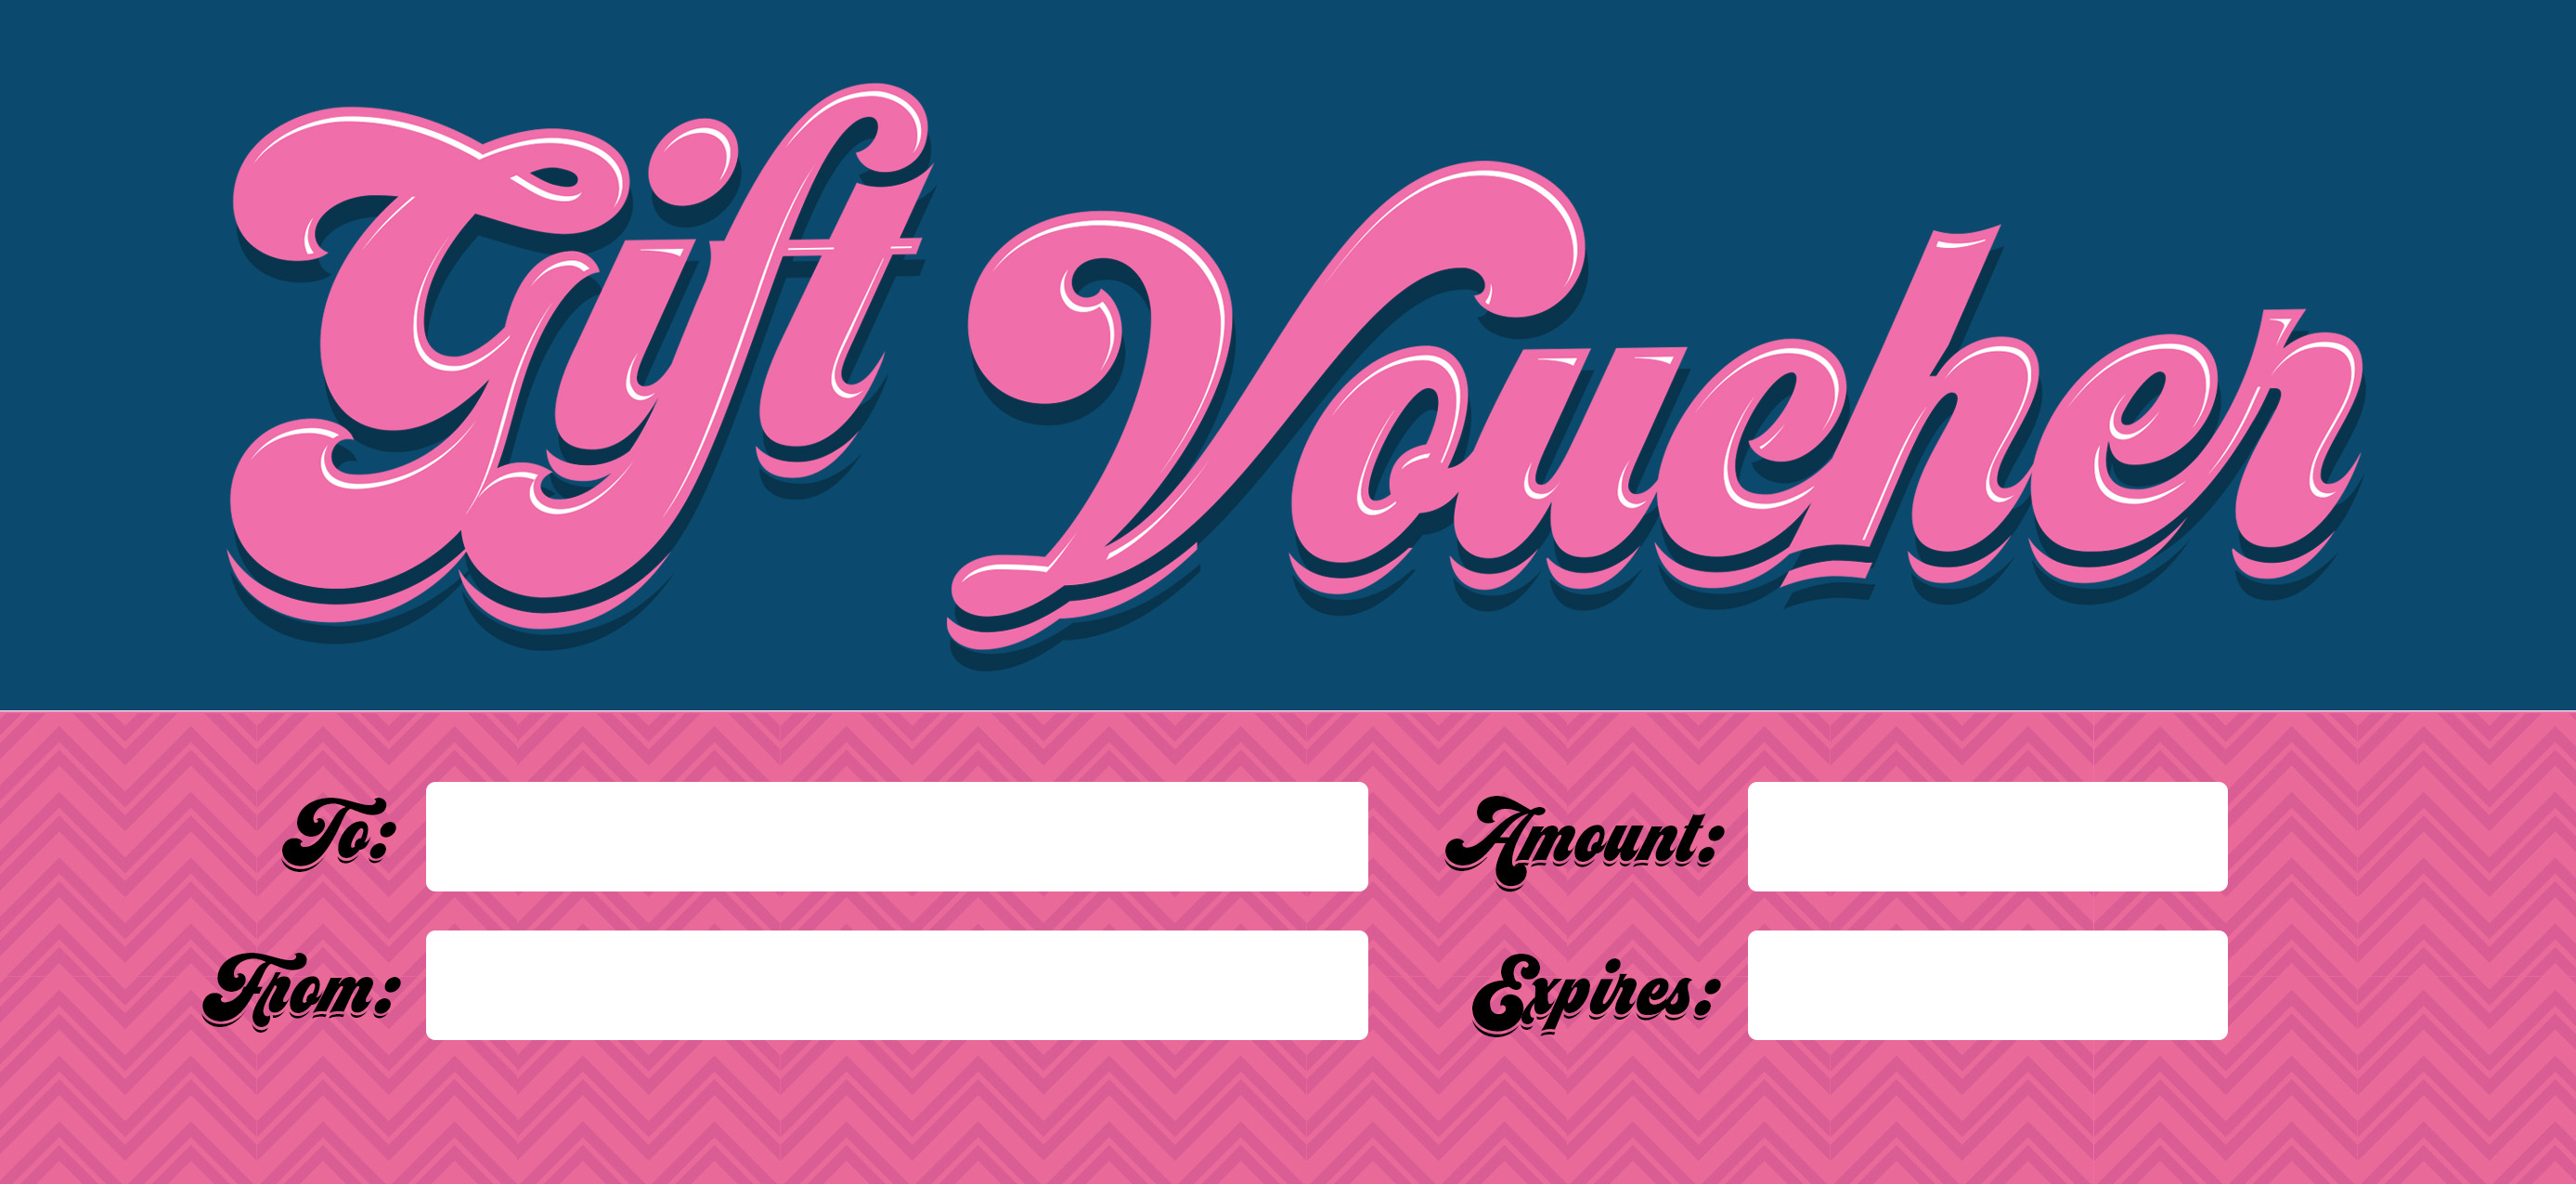 Free Online Gift Certificate Creator Jukeboxprint – Create Your Own Voucher Template